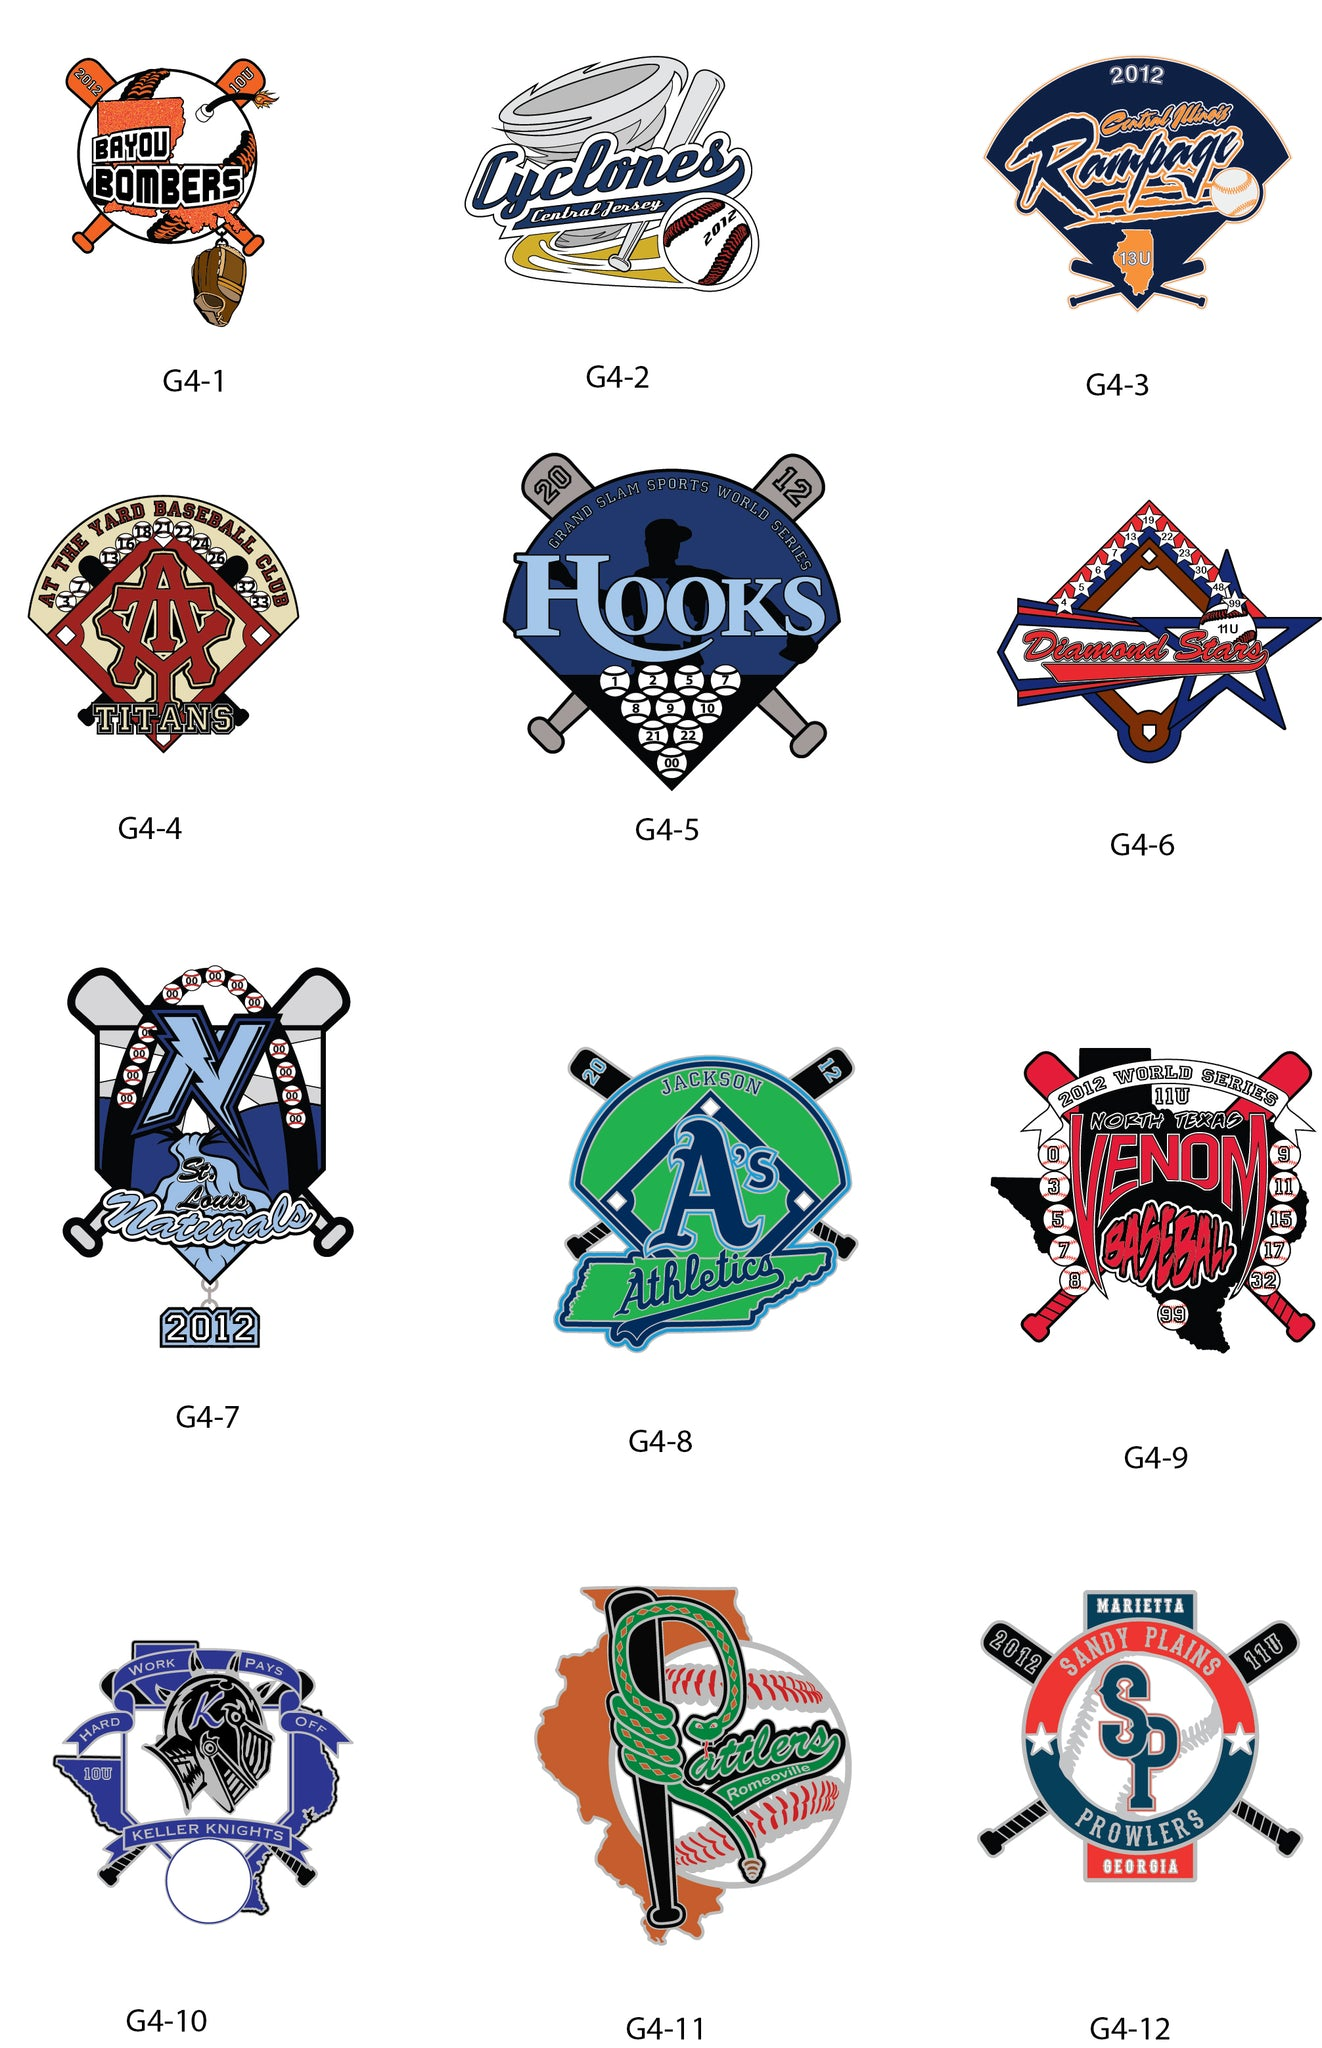 Baseball Gallery #4 - SteelBerry Pins